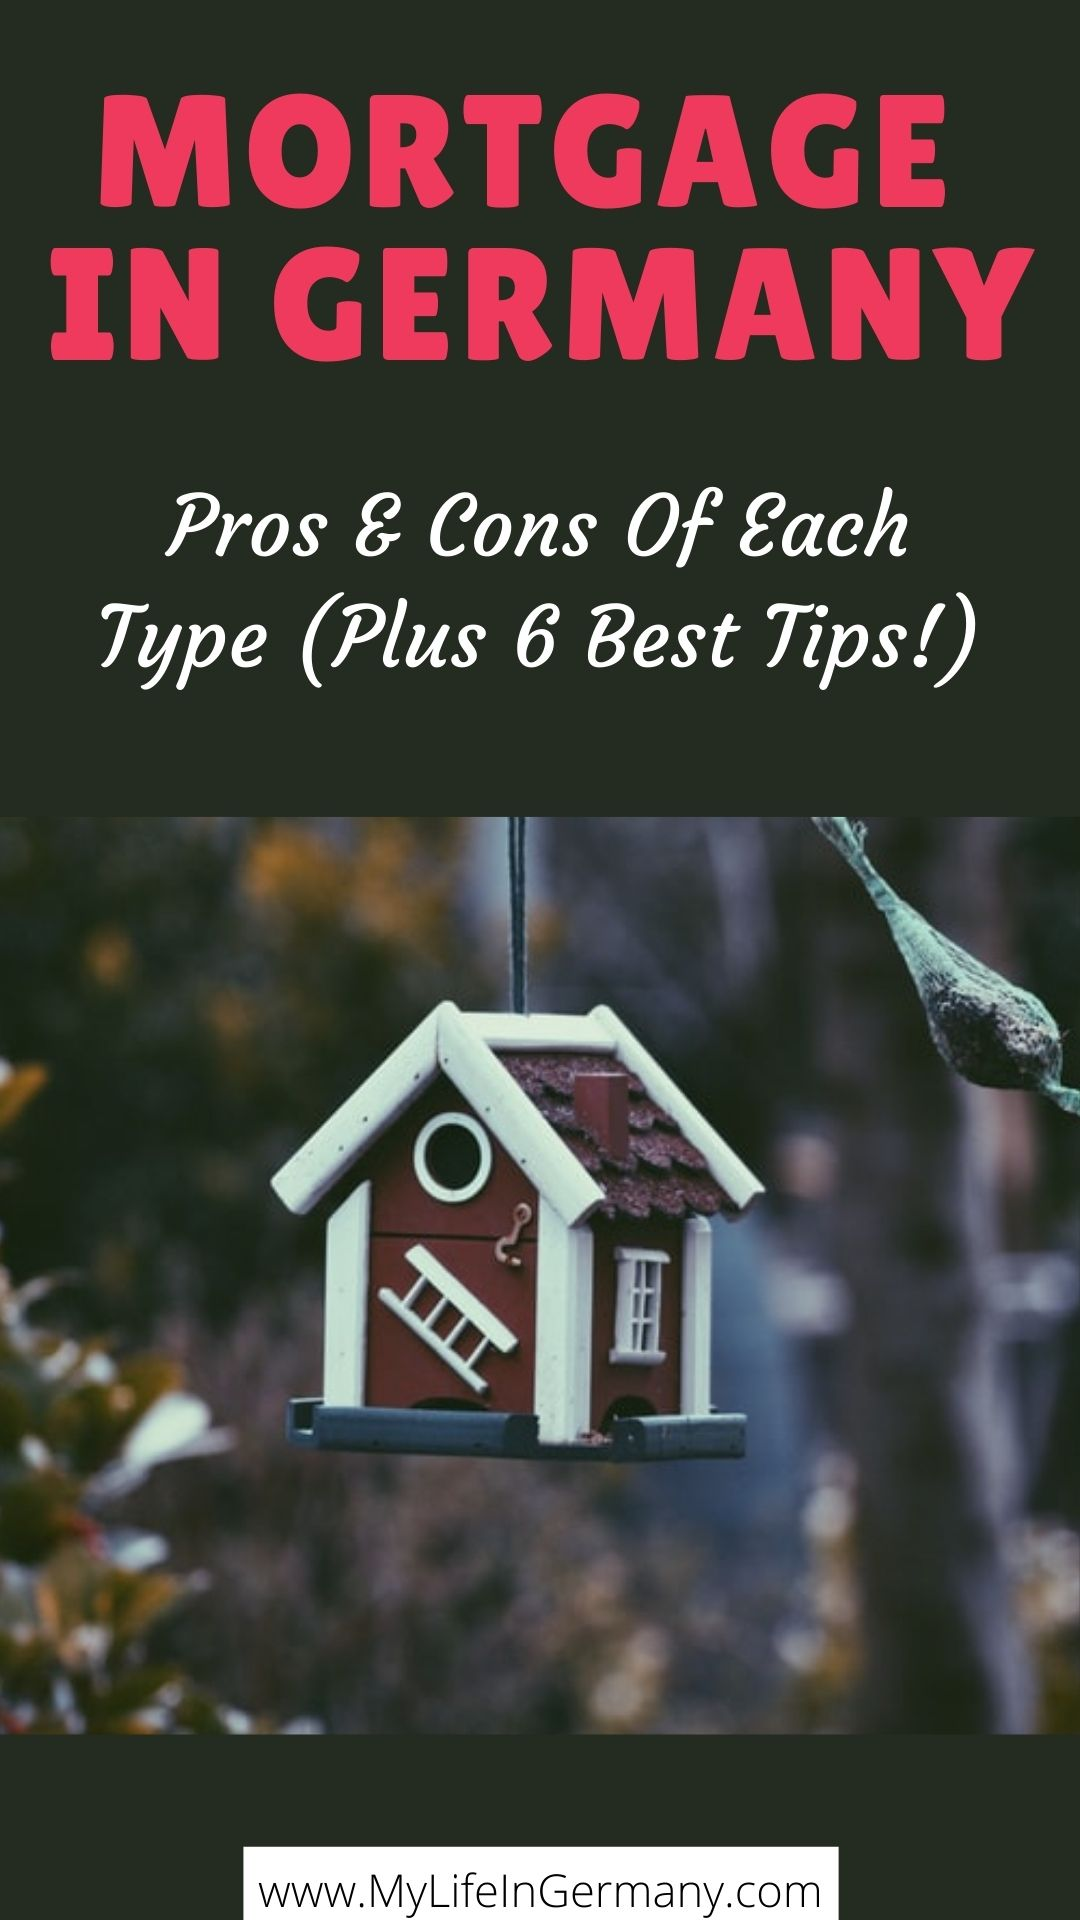 pinterest edited_mortgage in Germany_pros and cons of each type plus 6 best tips on getting a mortgage in germany